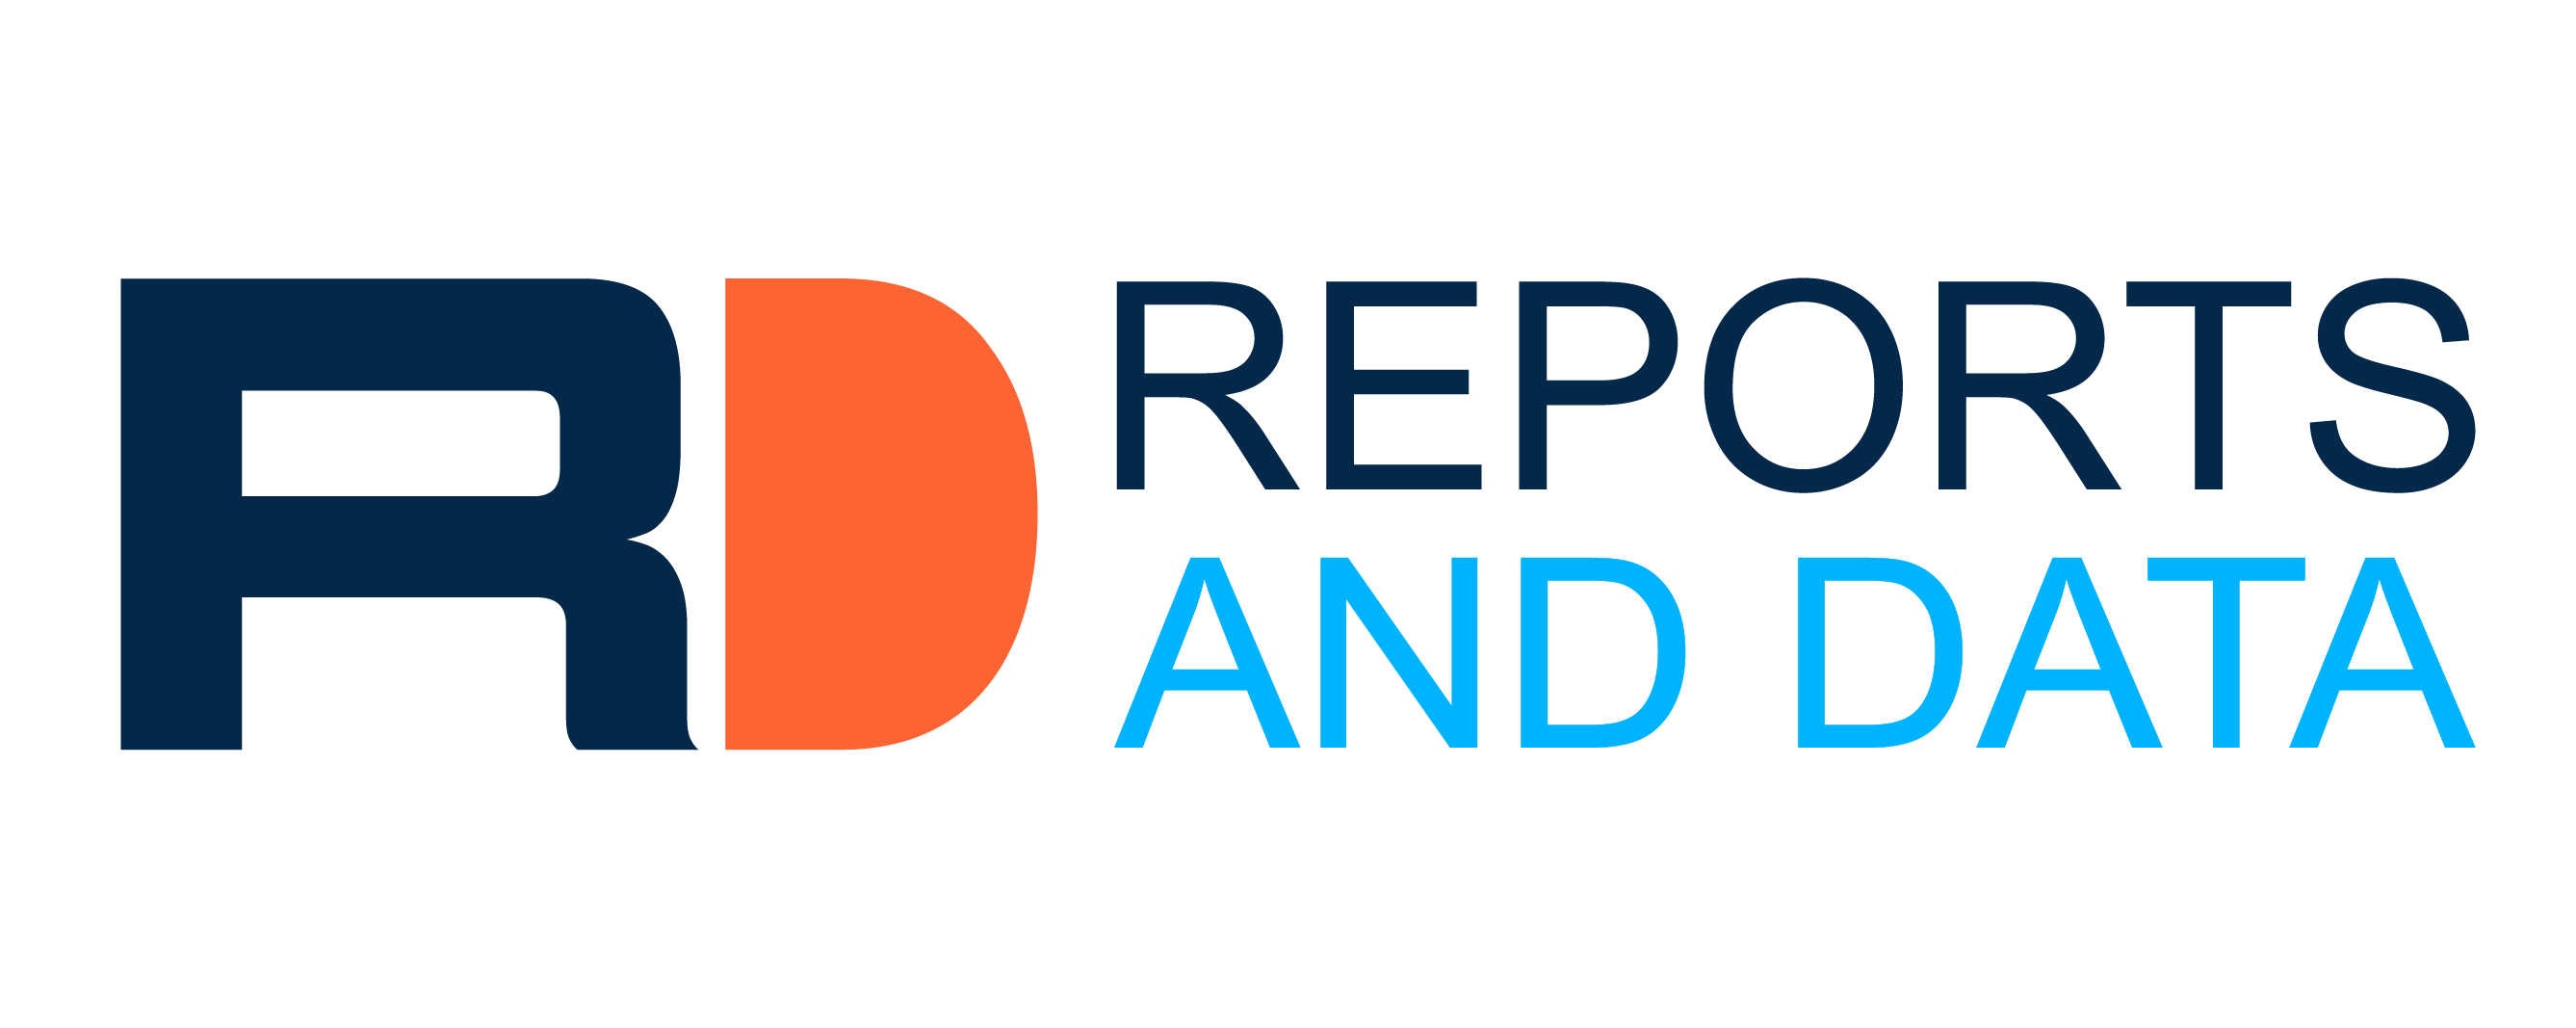 Thermal Paper Market Size to Reach $ 6.00 Billion by 2027; Industry Compound Annual Growth Rate of 5.3% | Reports and Data